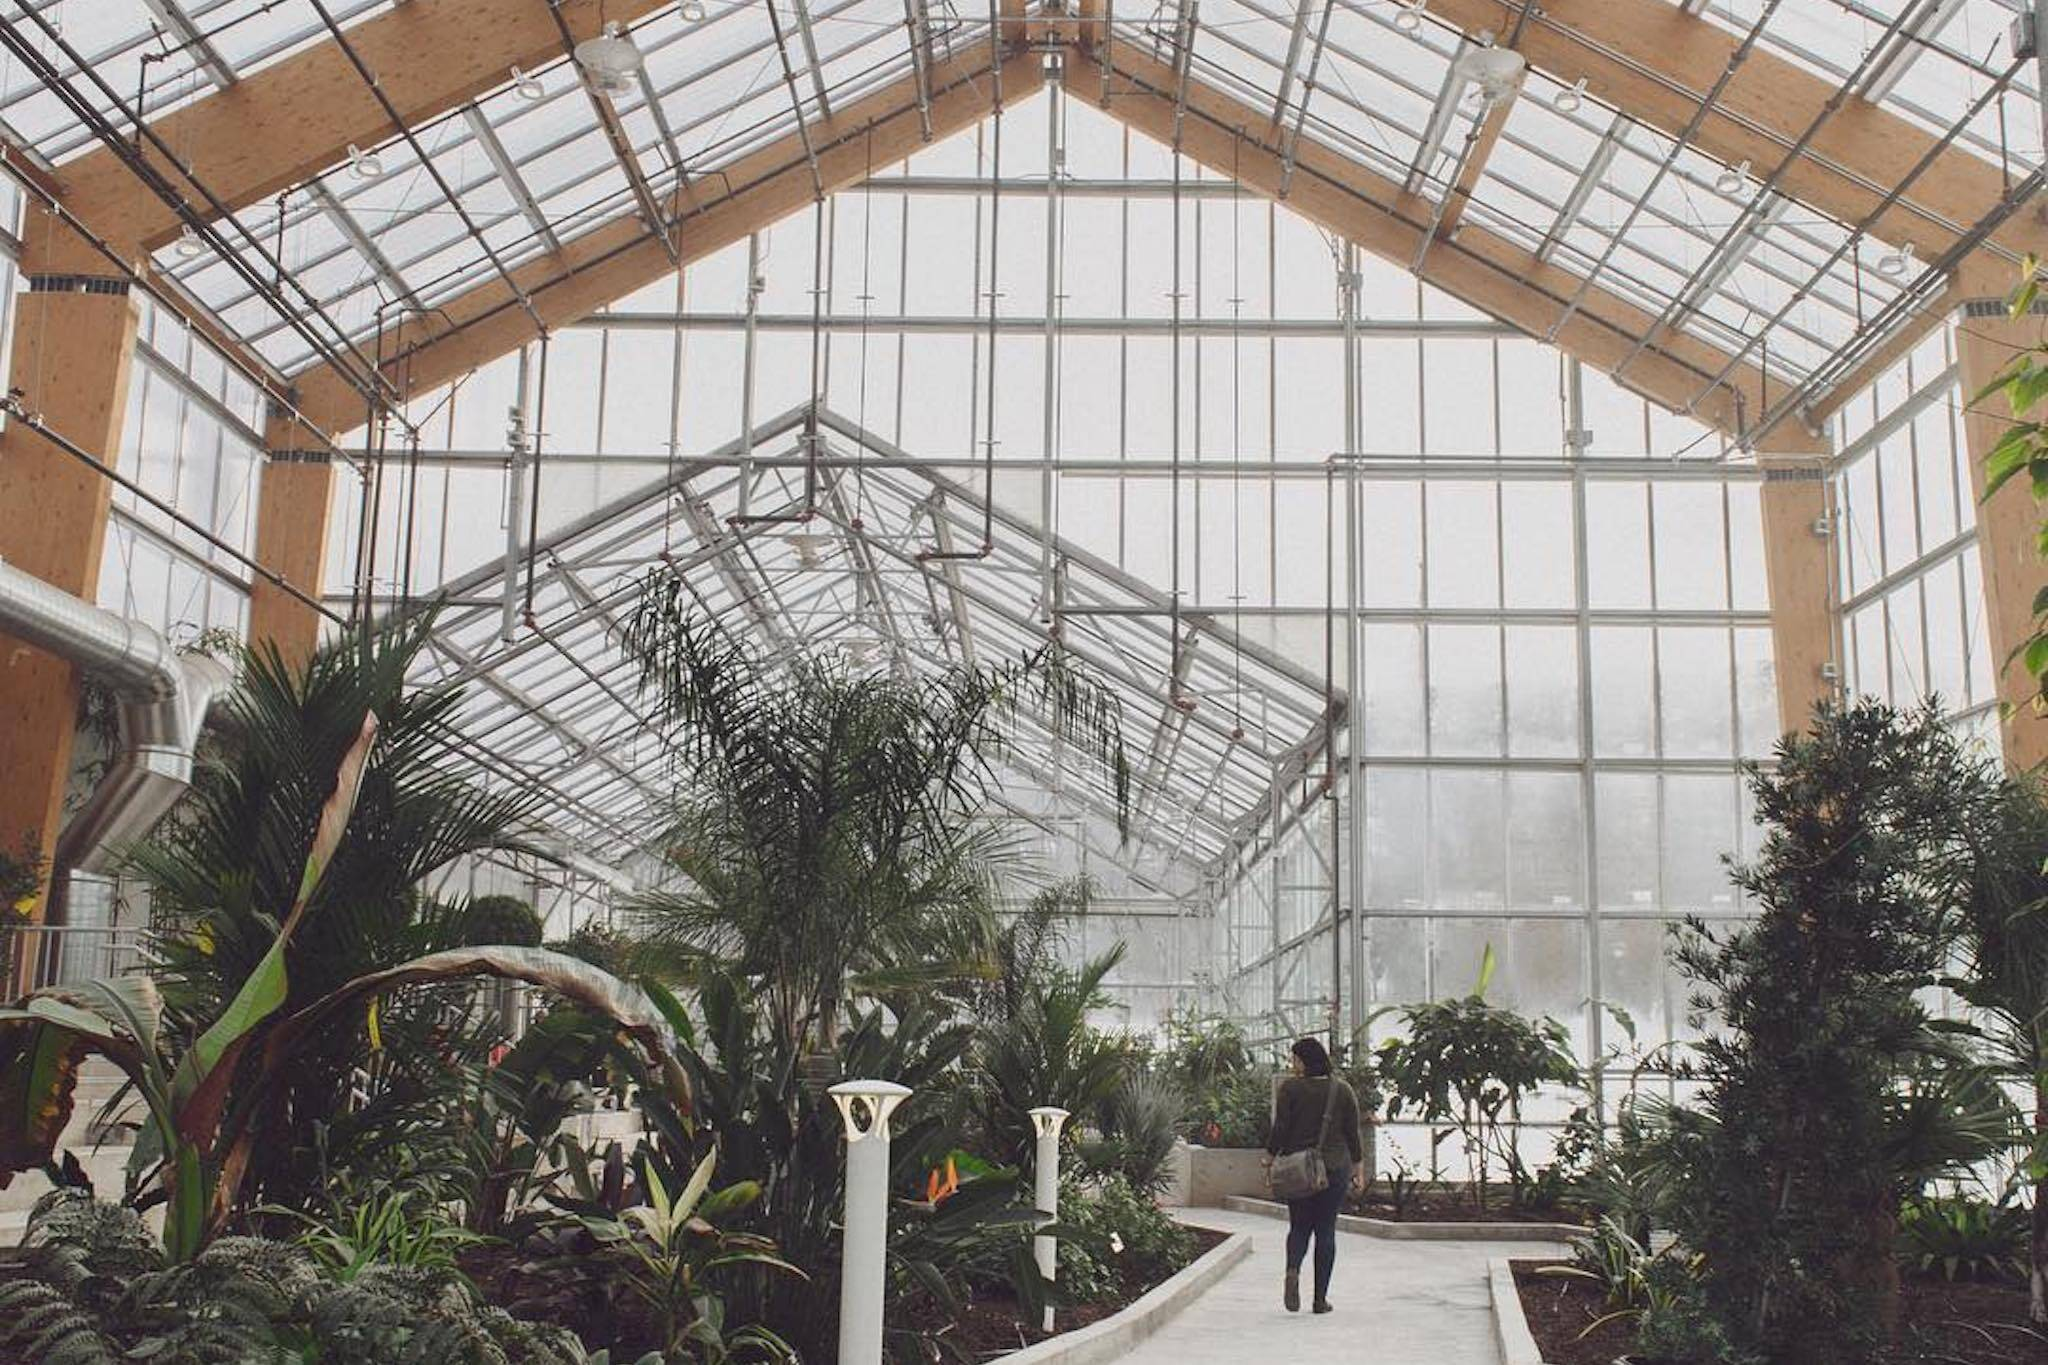 gage park greenhouse